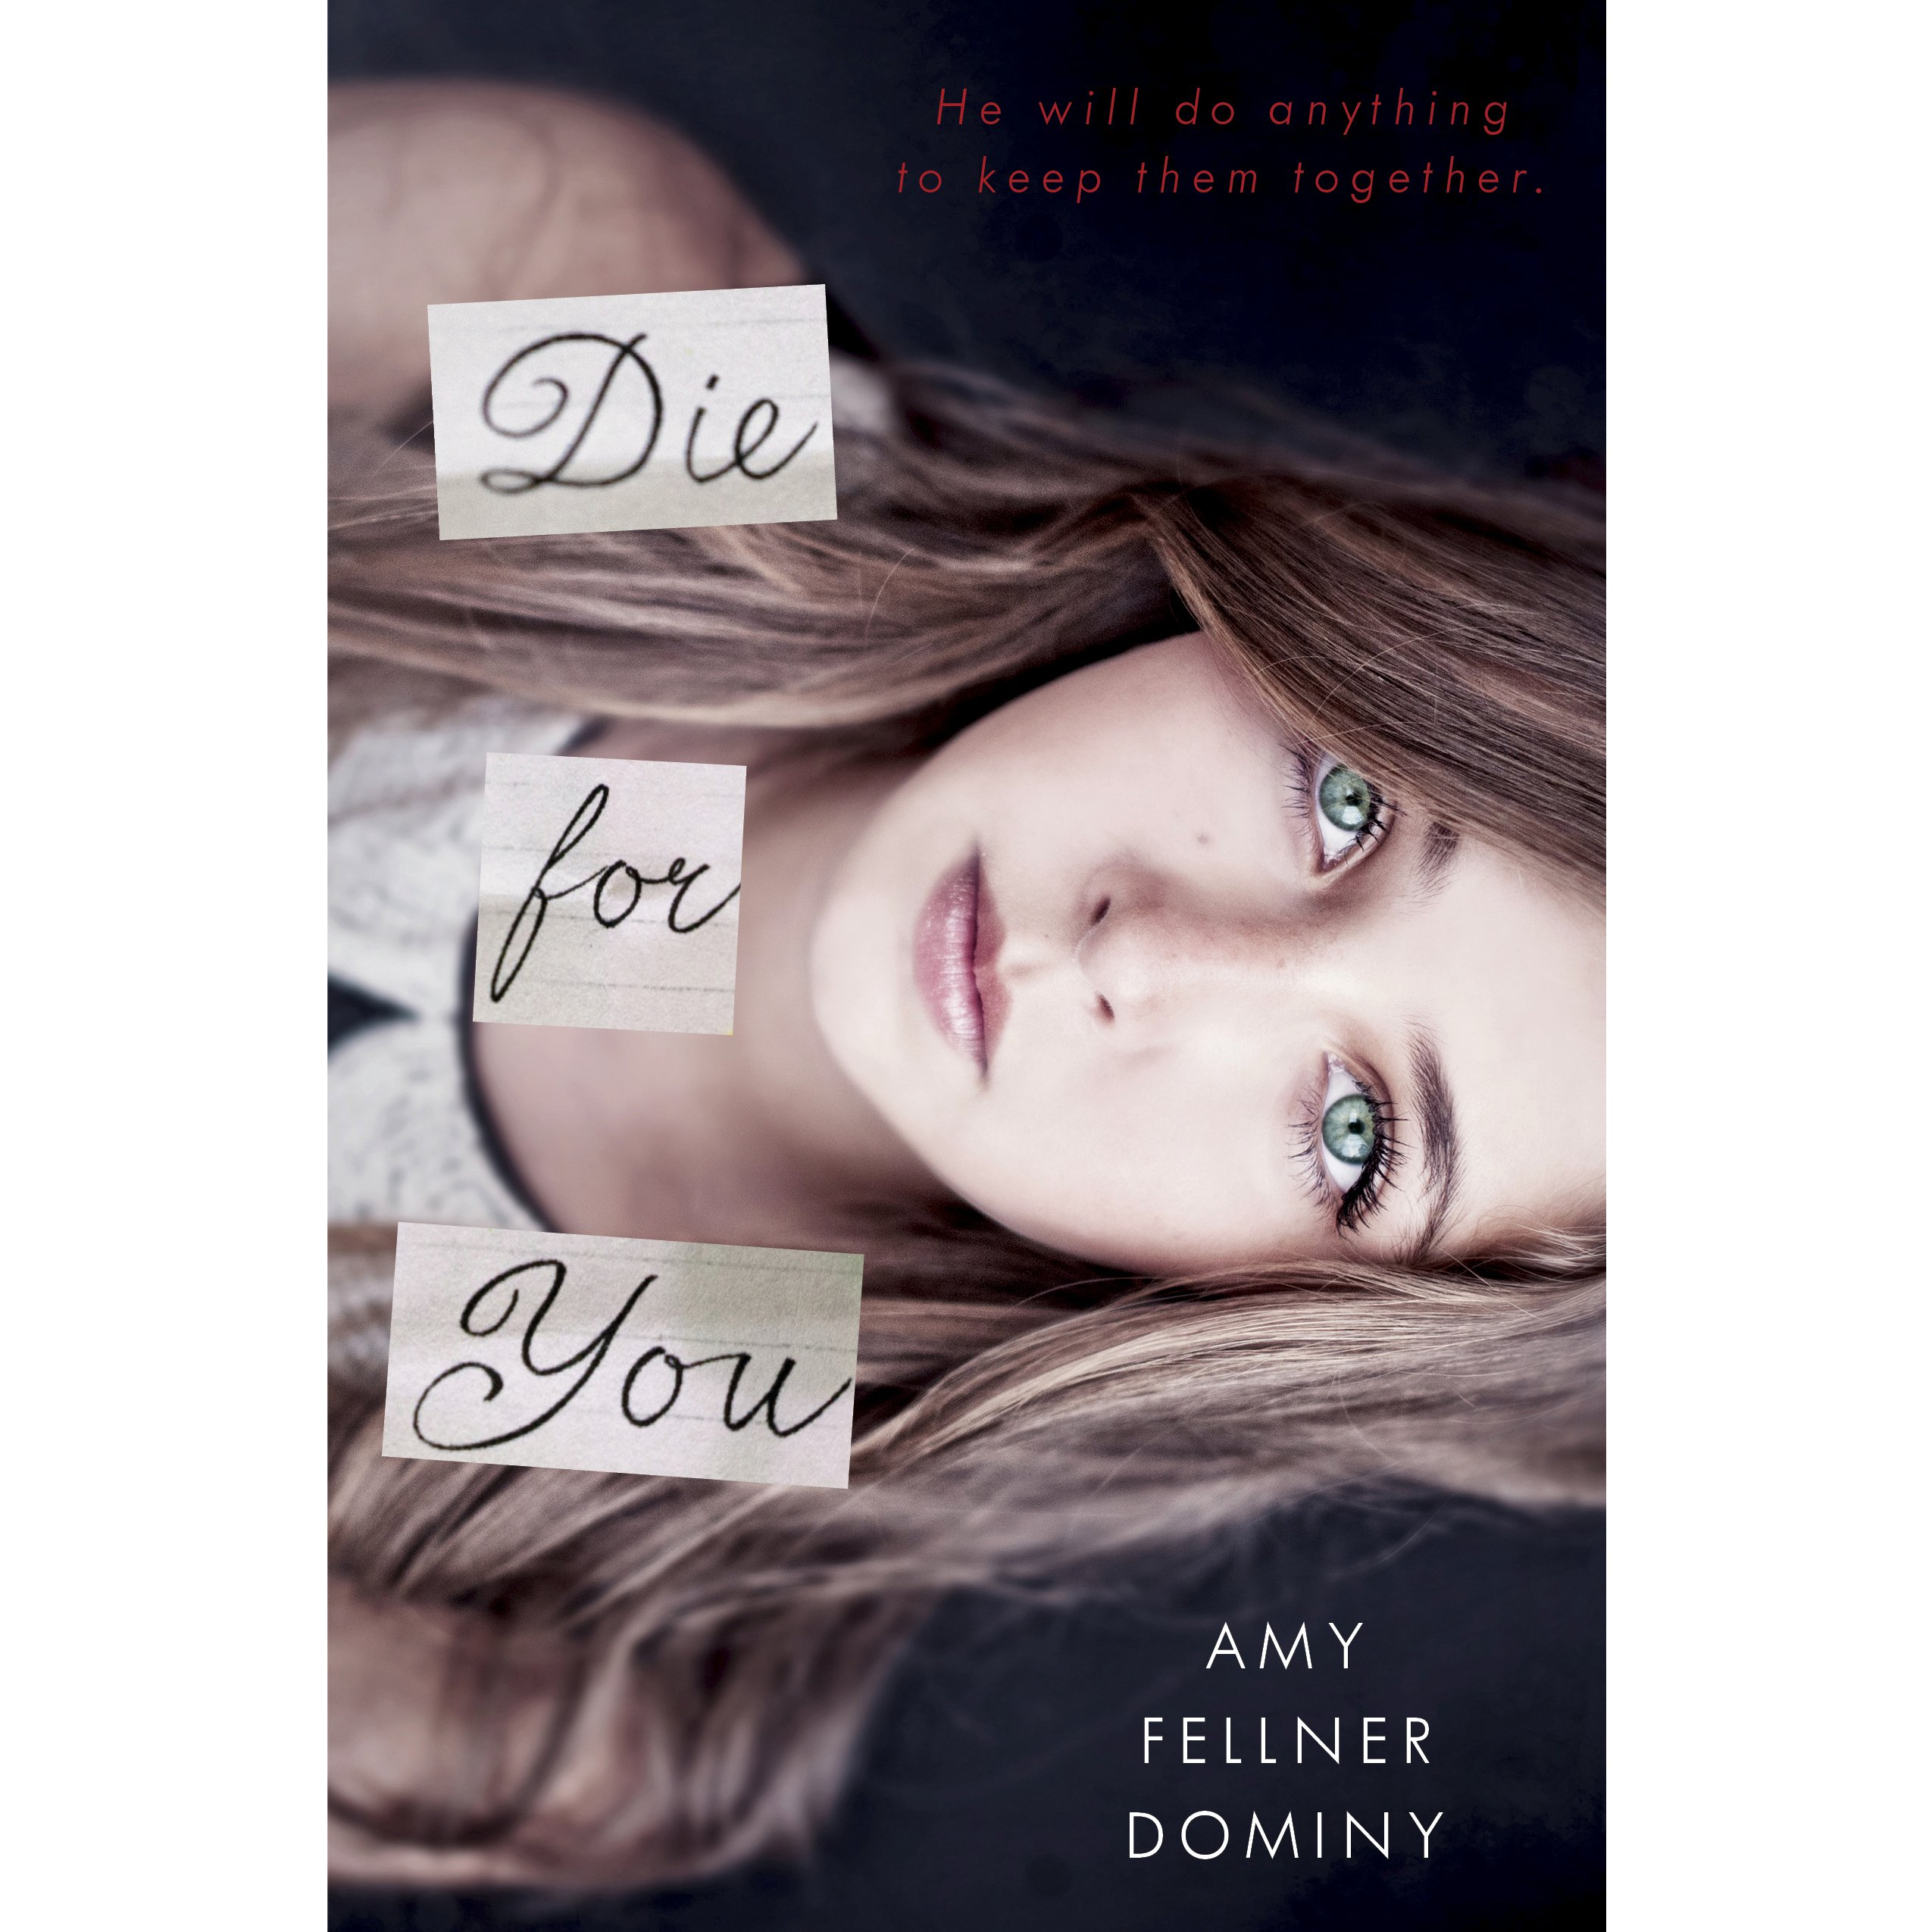 Excerpt from Die For You by Amy Fellner Dominy